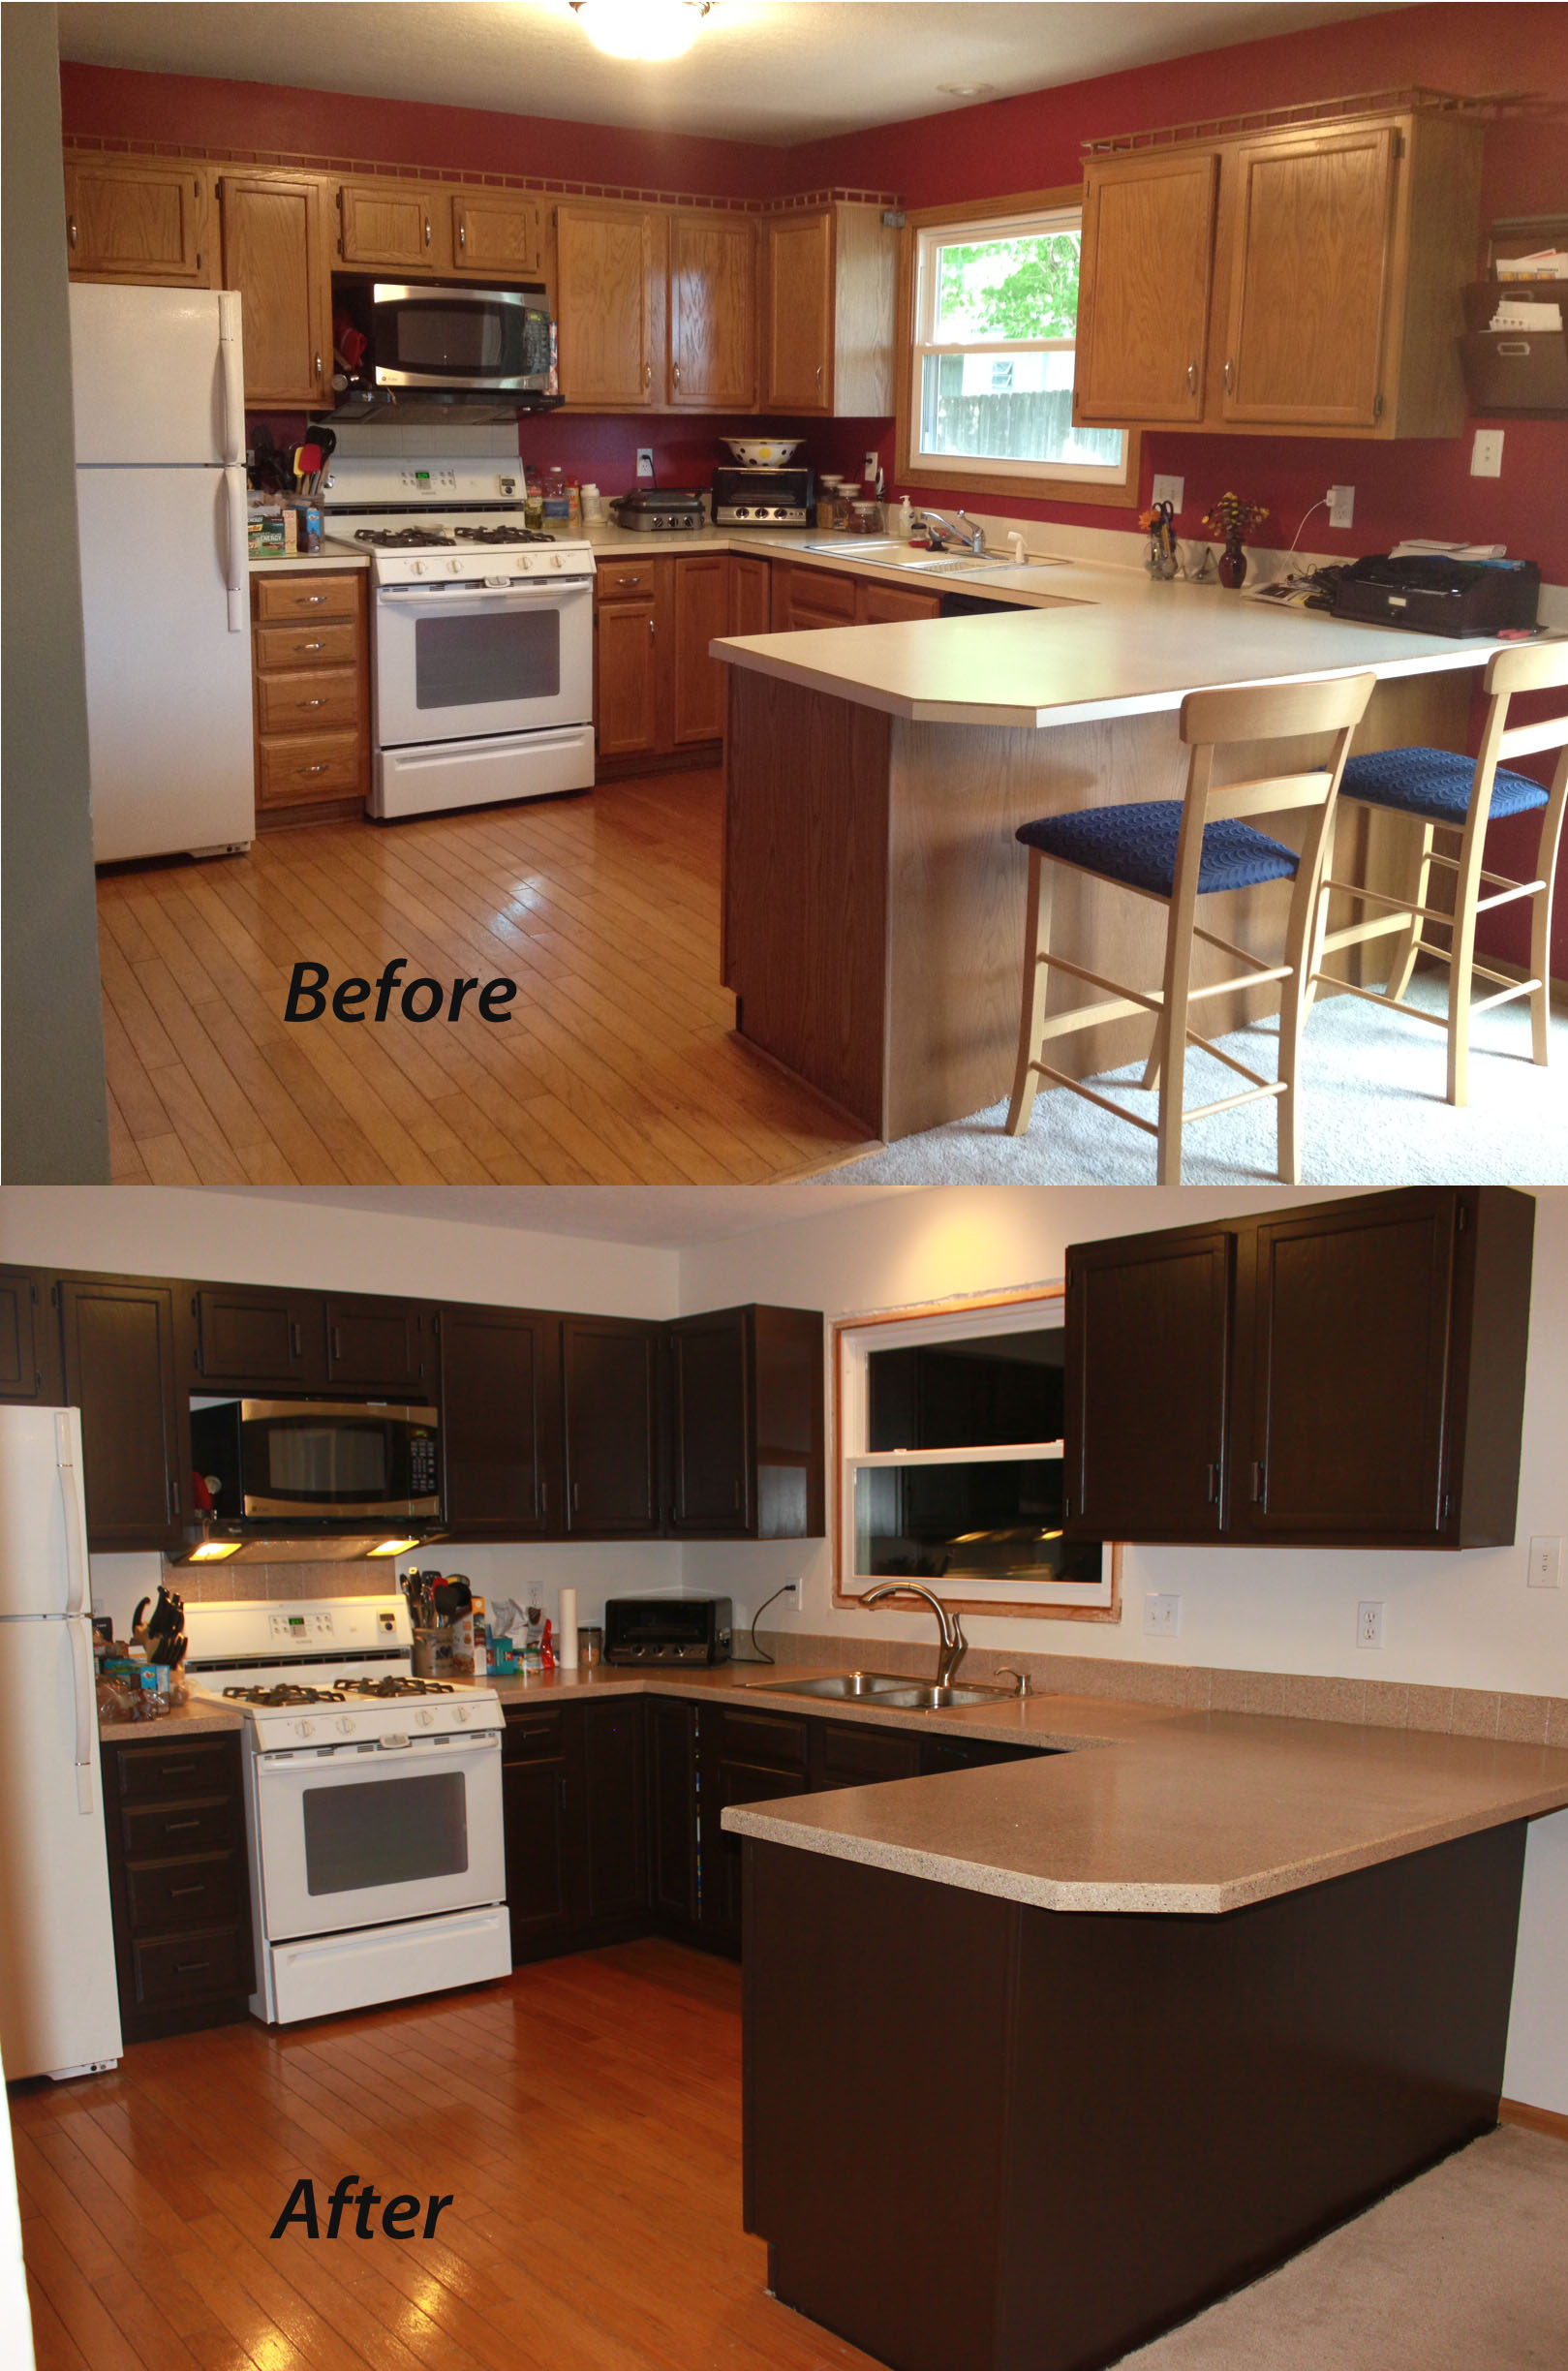 painting kitchen cabinets - before and after photos & Painting Kitchen Cabinets - Sometimes Homemade